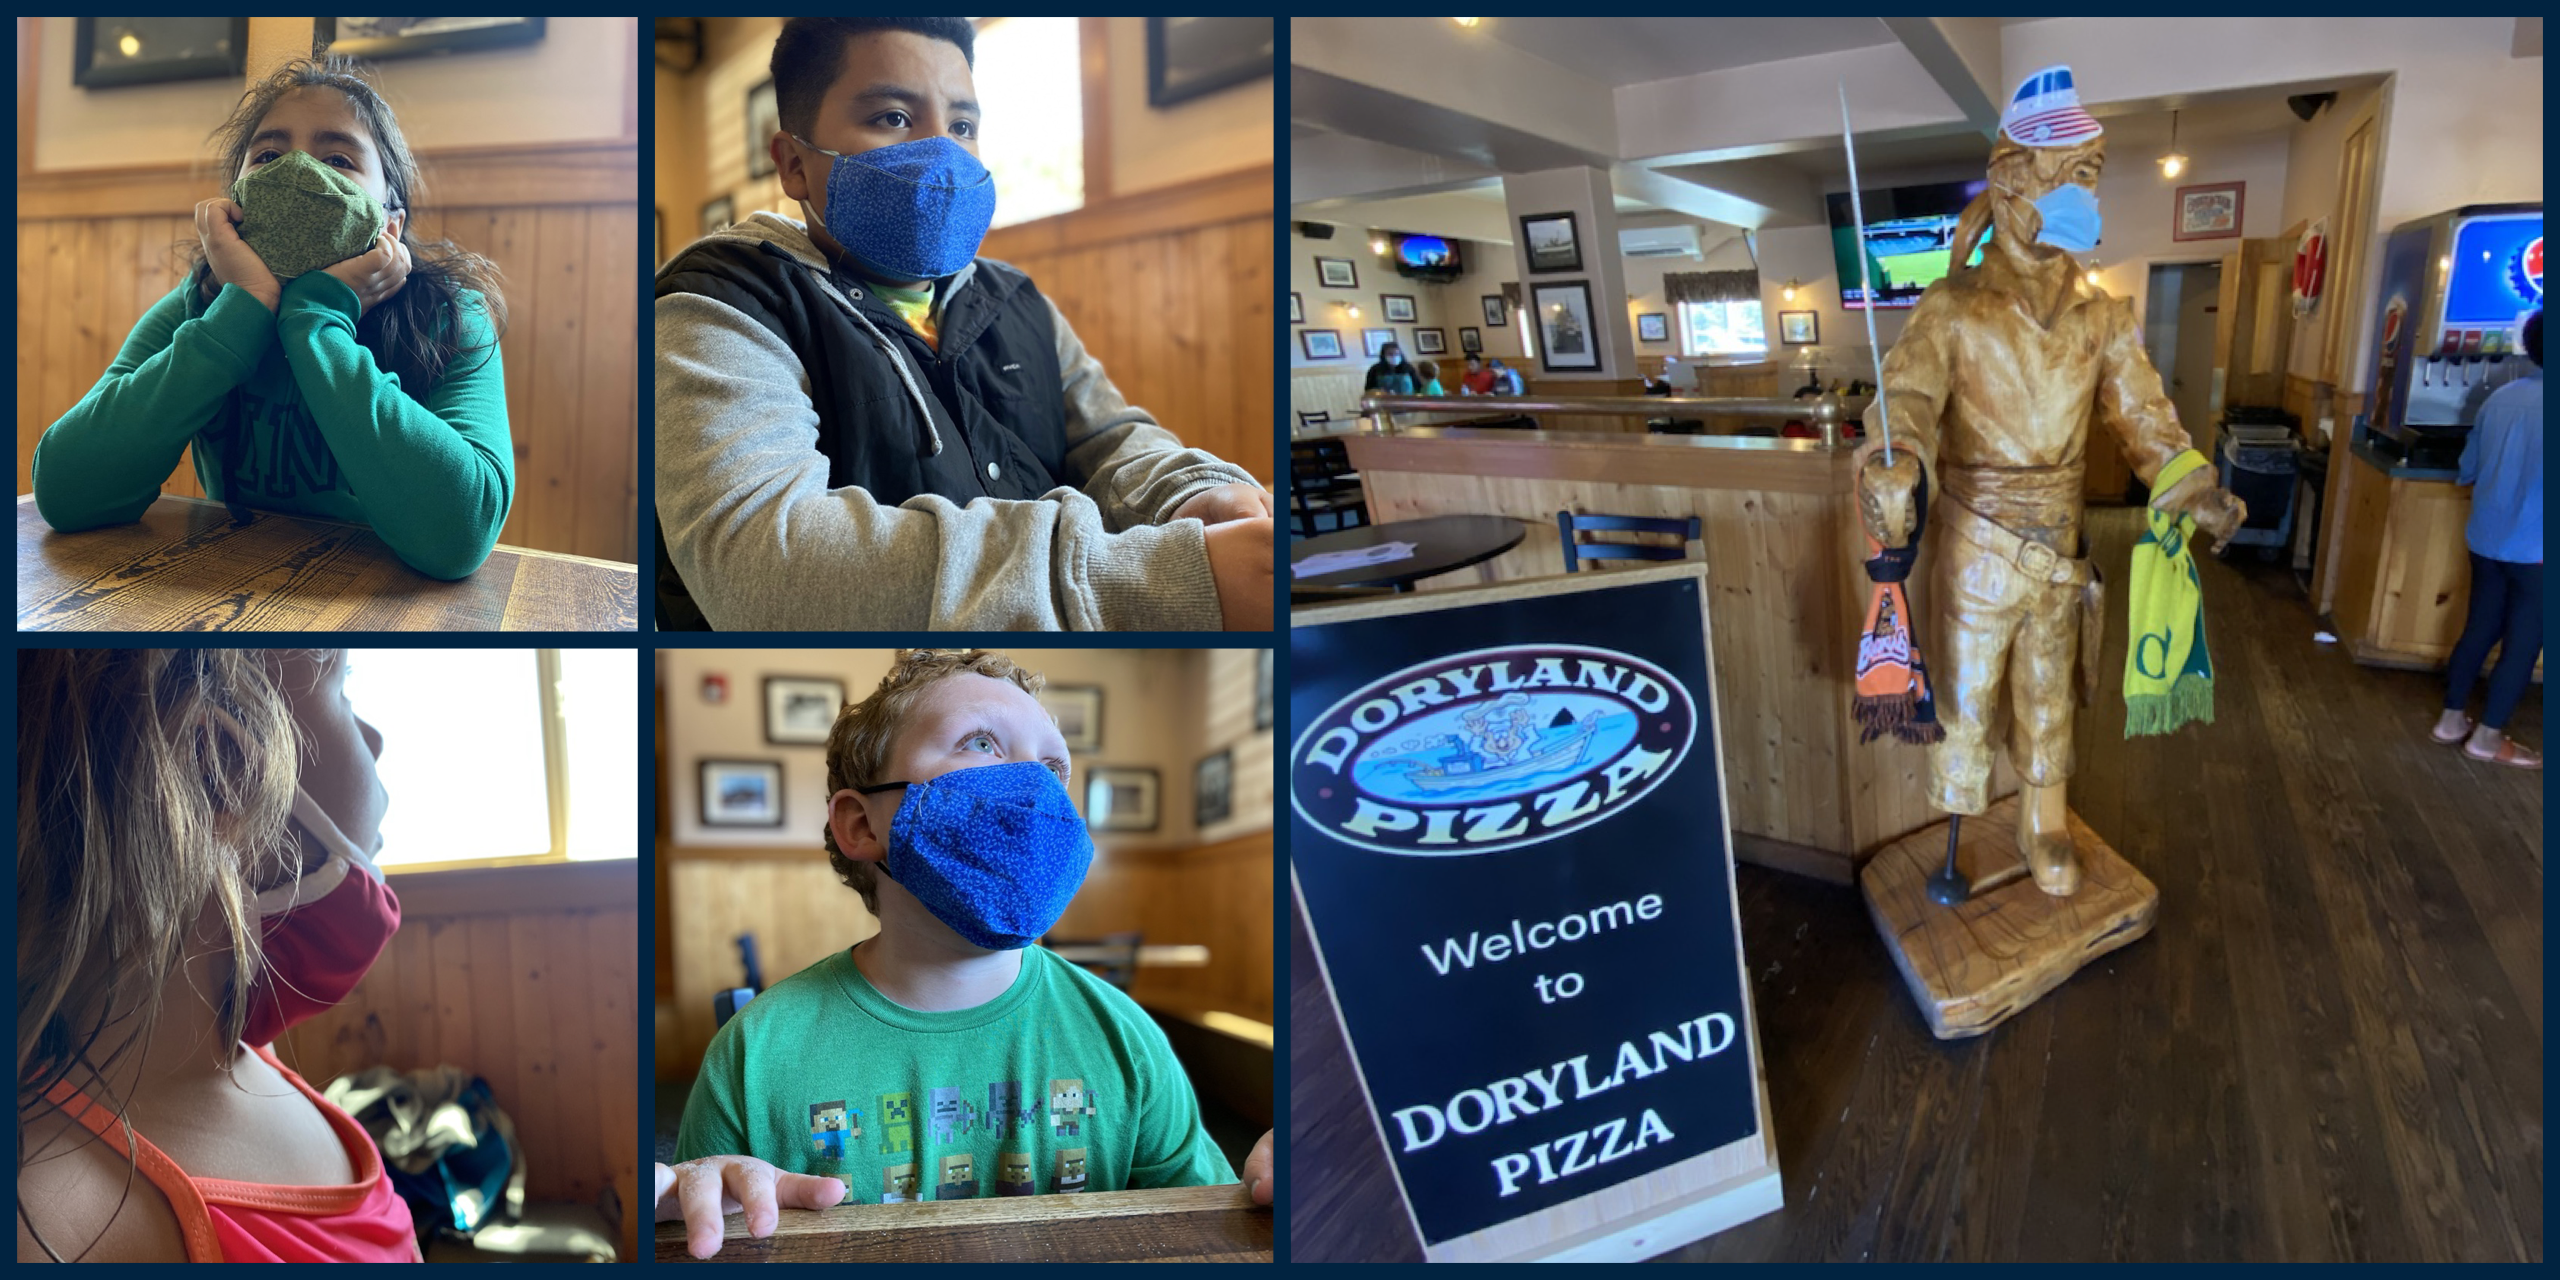 photo of kids in masks at Pizza Resturant